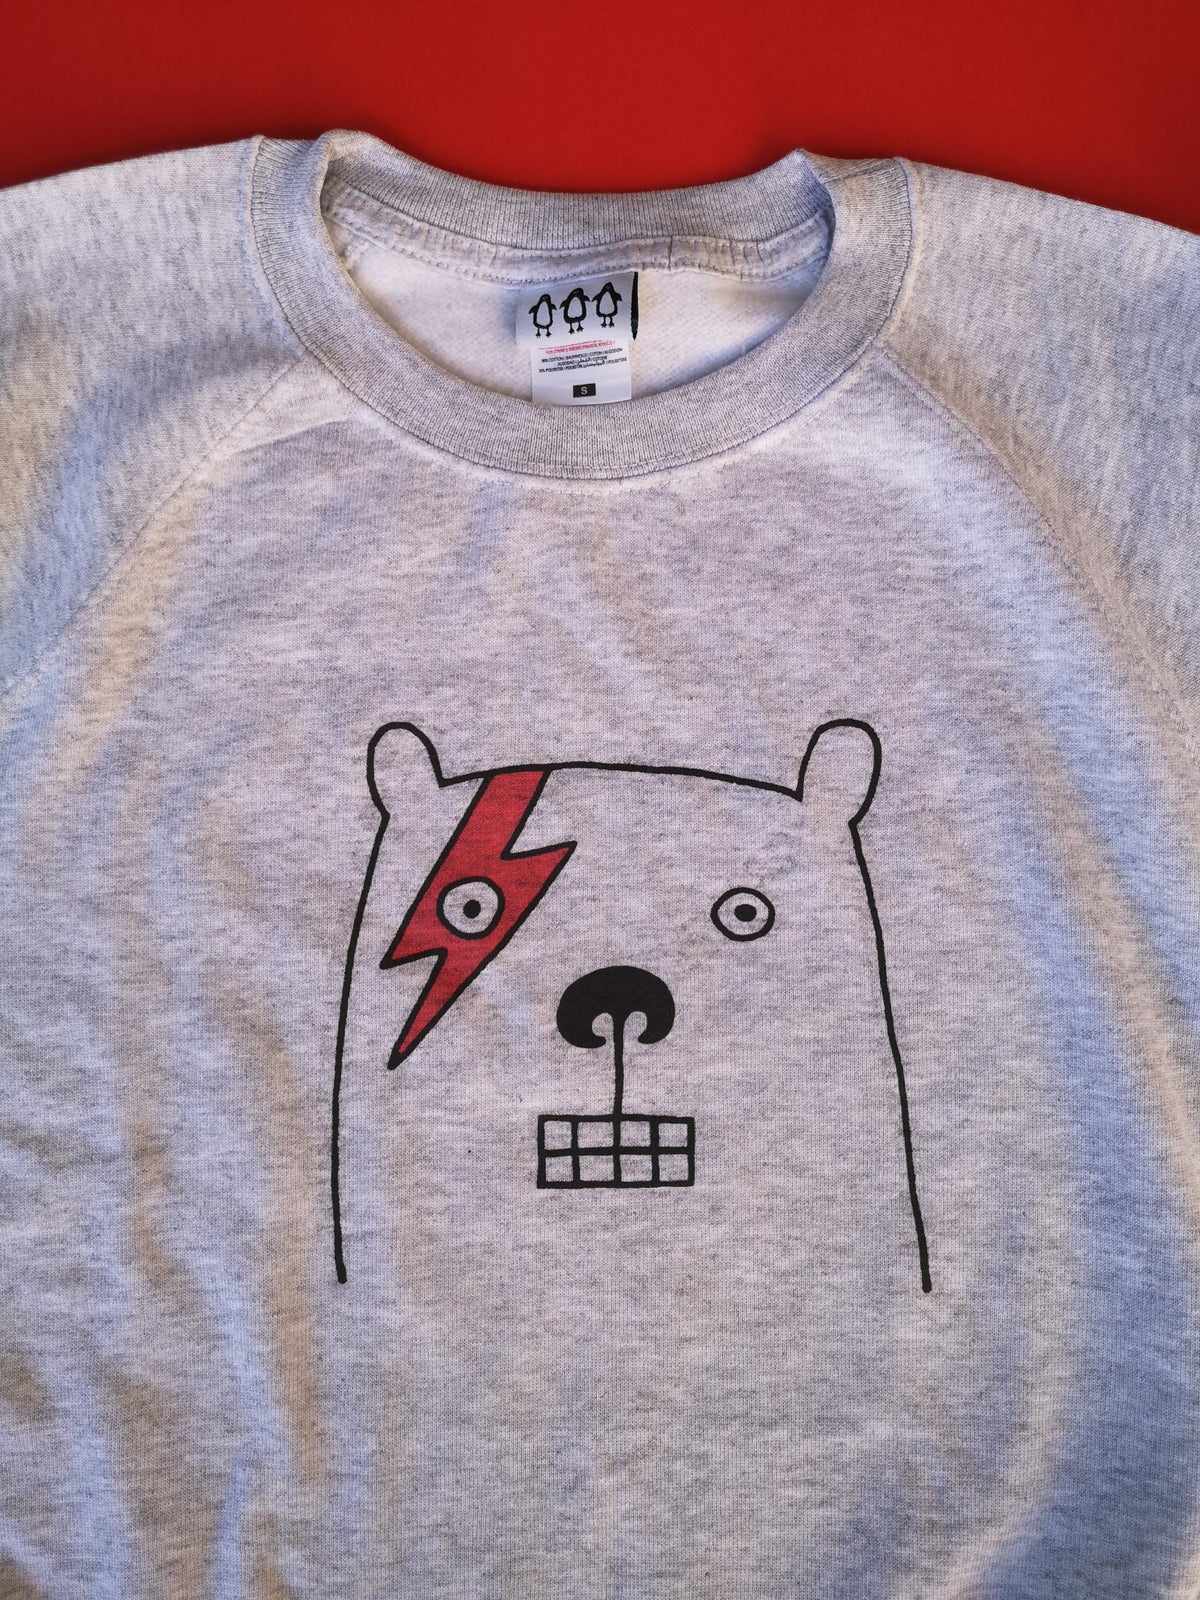 Image of Bowie bear unisex sweatshirt